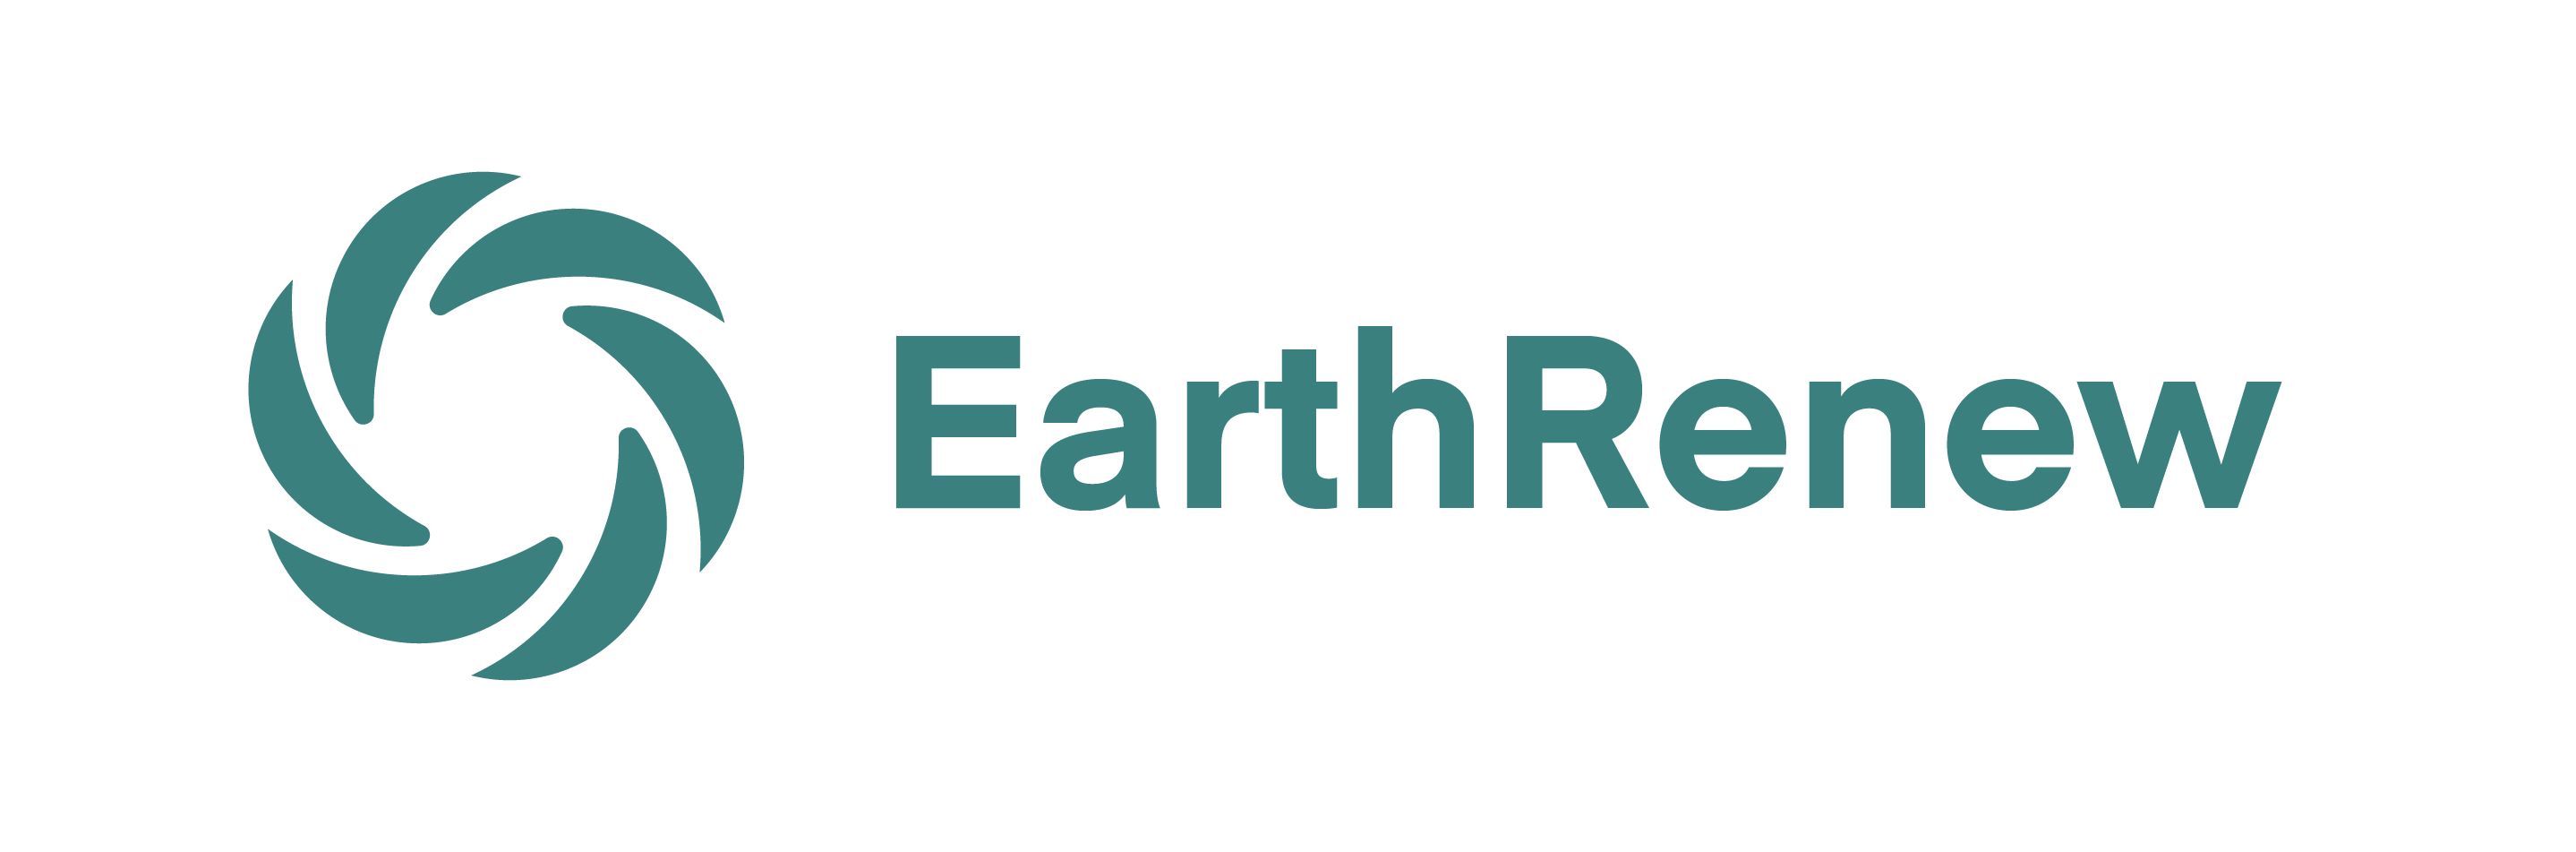 EarthRenew Announces Preliminary Results From Its Feasibility Study on Partner and Site Location for Its First U.S